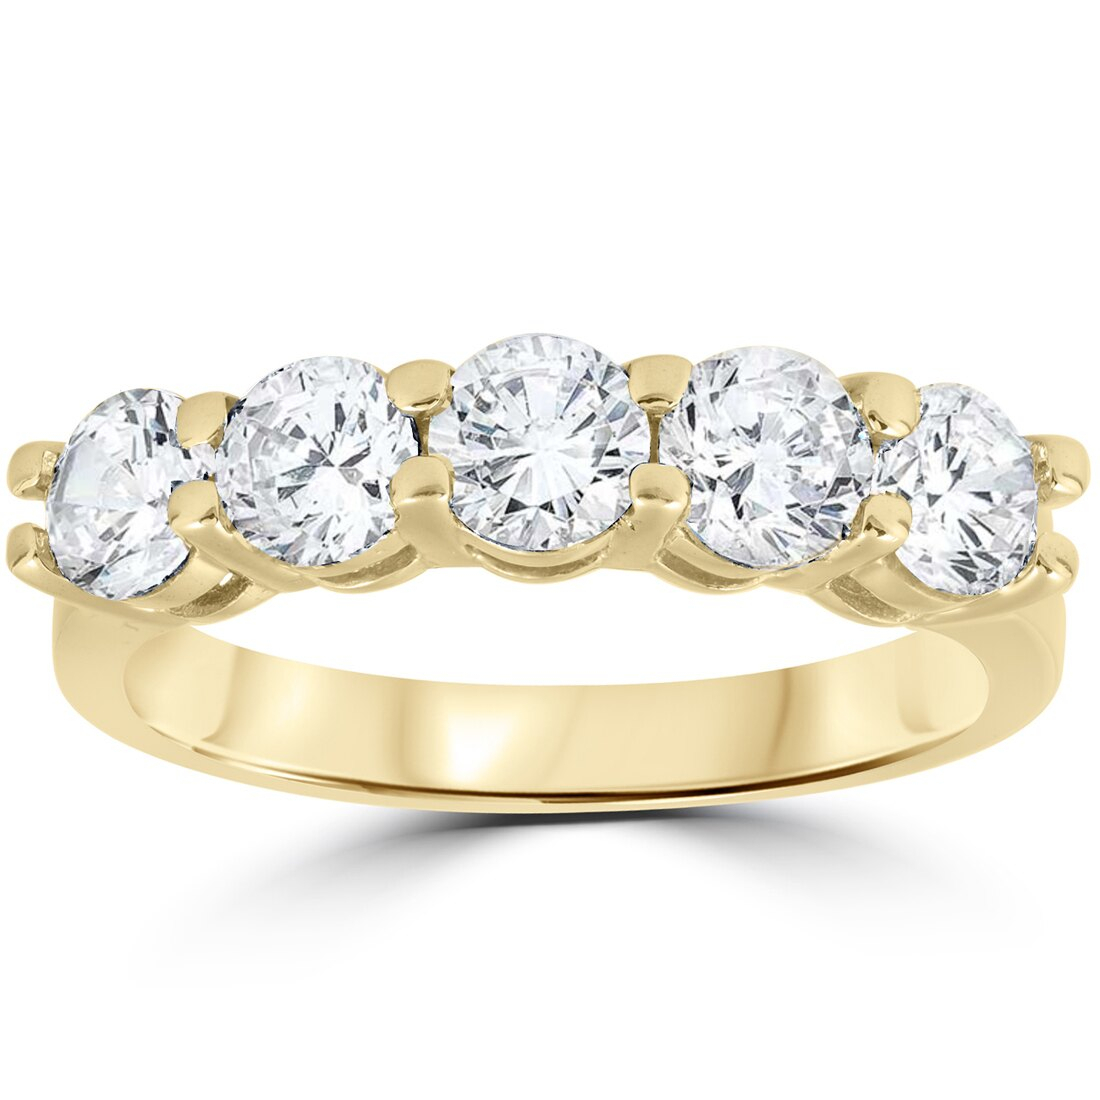 2 Ct Real Diamond Wedding Ring 14k Yellow Gold 5 Stone Womens Anniversary Band For Most Recently Released Composite Diamond Five Stone Anniversary Bands In White Gold (View 4 of 25)